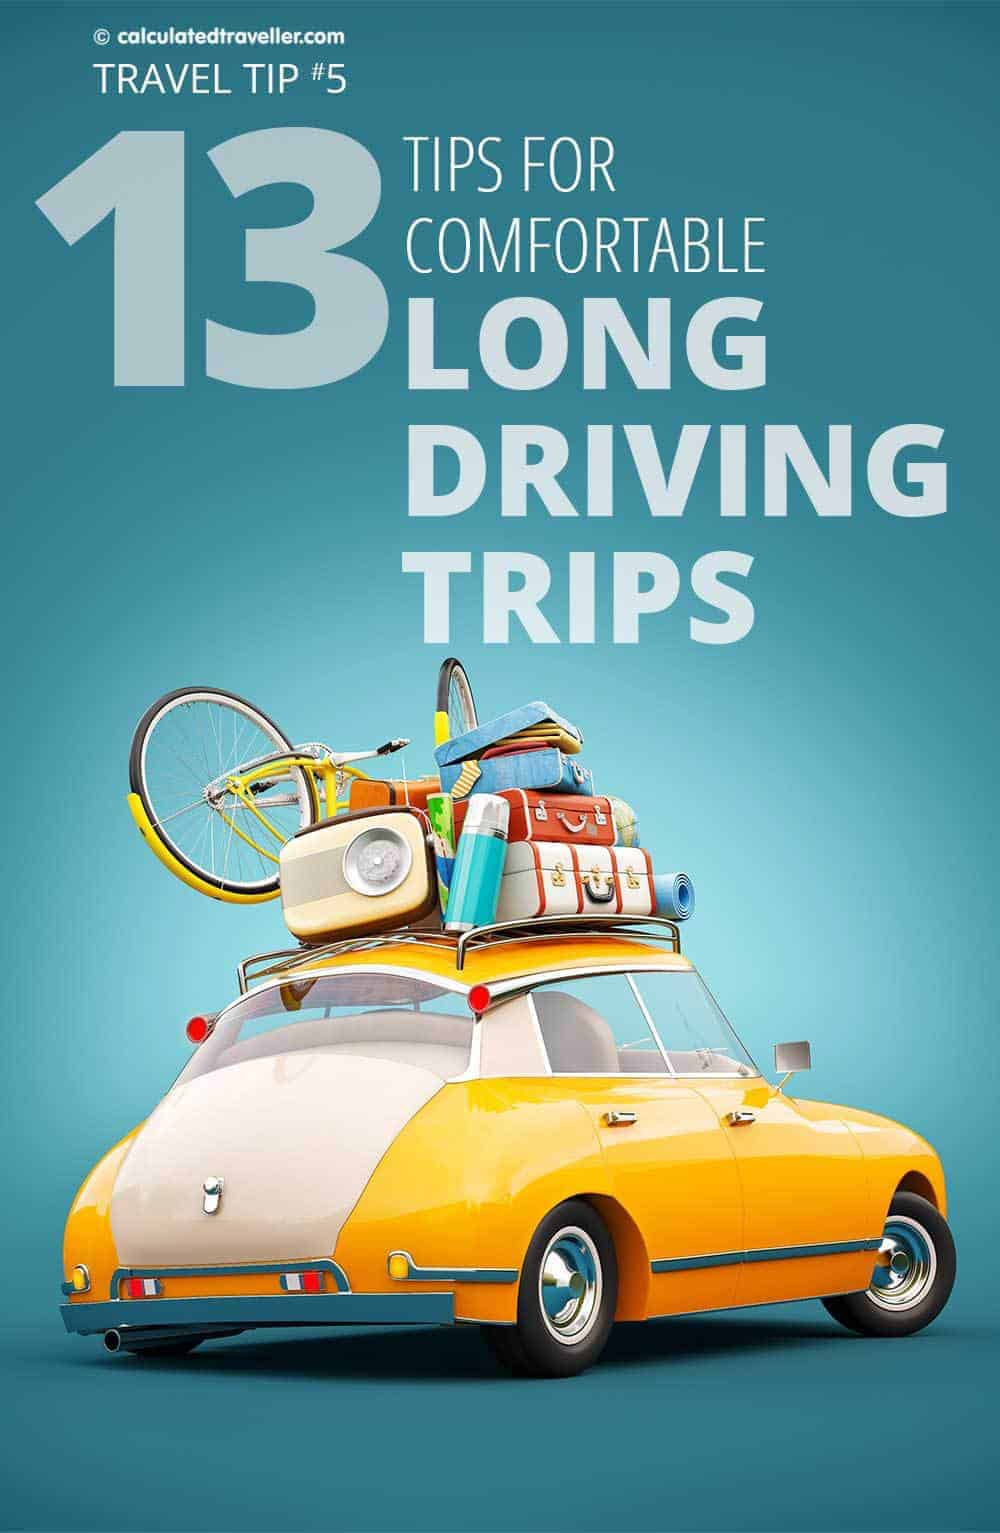 Calculated Traveller Magazine provides a quick rundown of 13 tips for comfortable long driving trips and road trips for both the driver and the passenger.